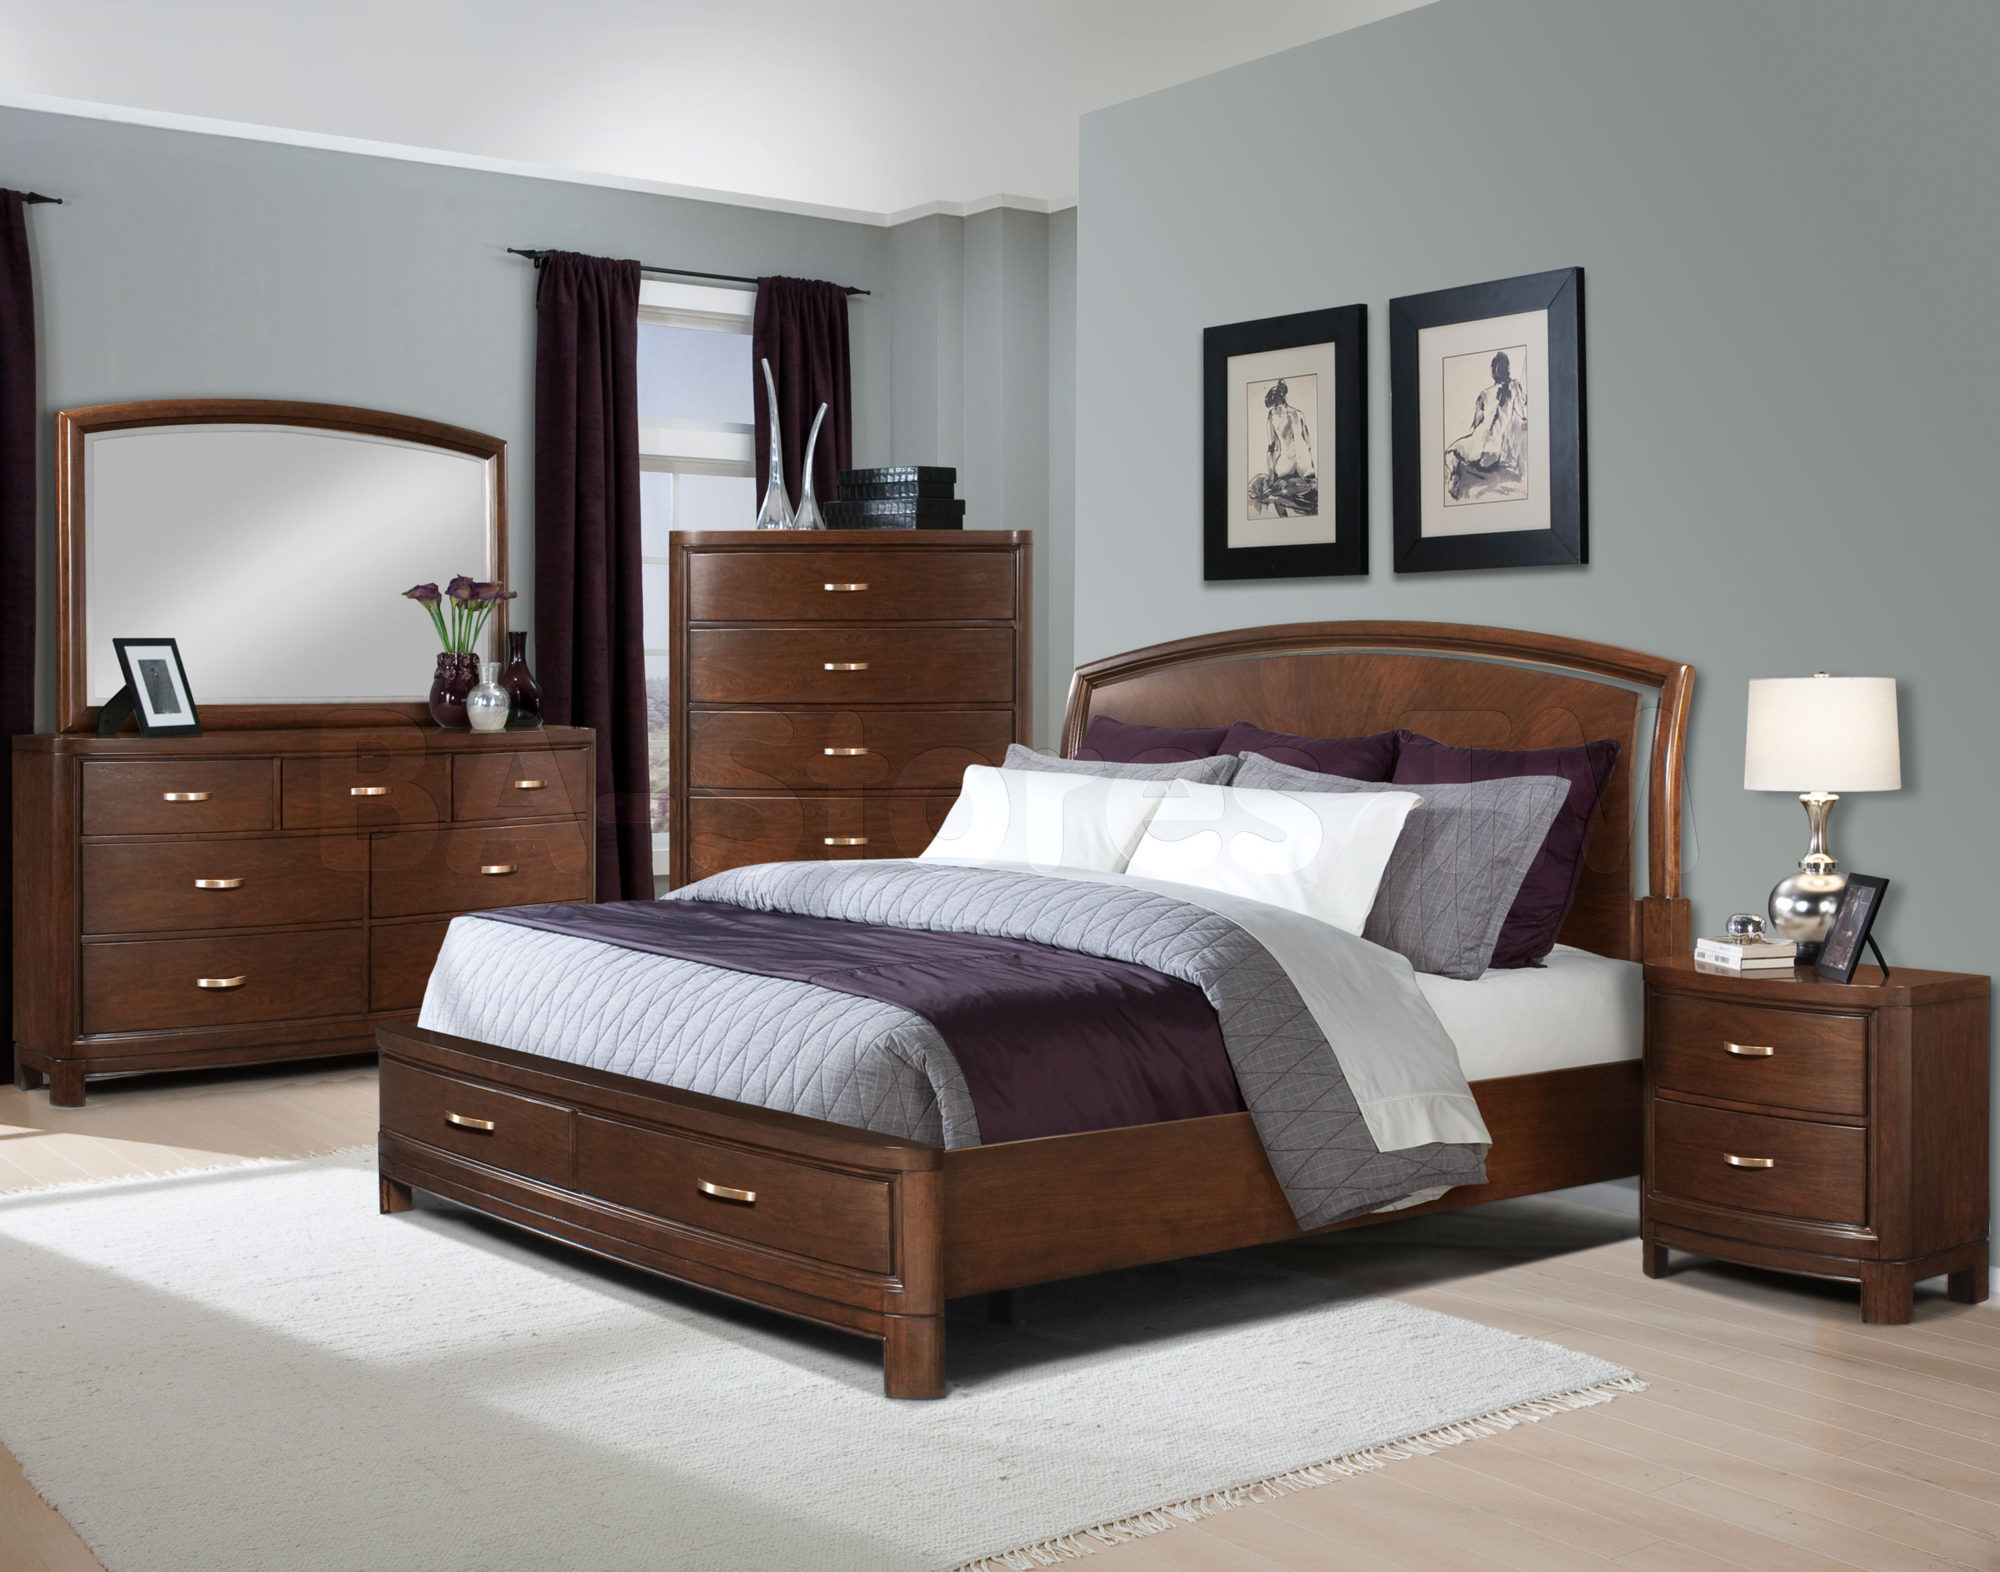 Bedroom ideas with brown furniture